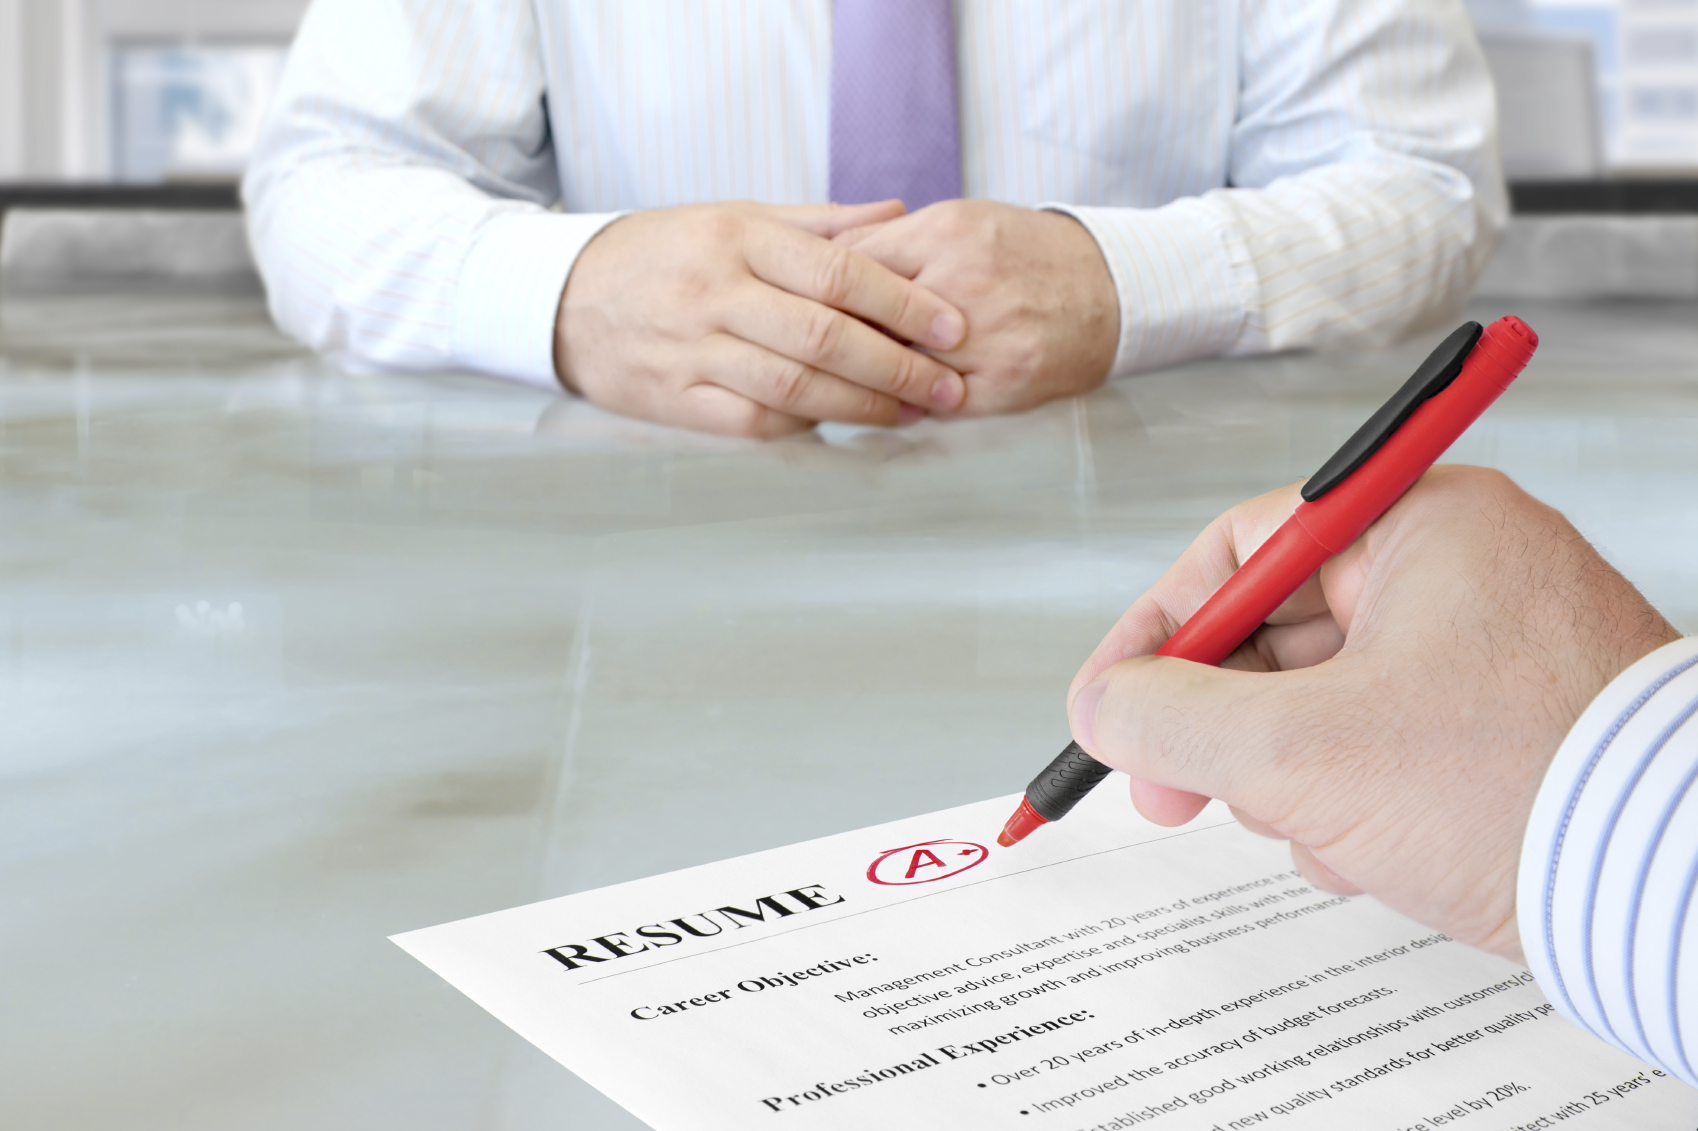 Mastering The Art Of Résumé Writing: Take Control Of Your Future